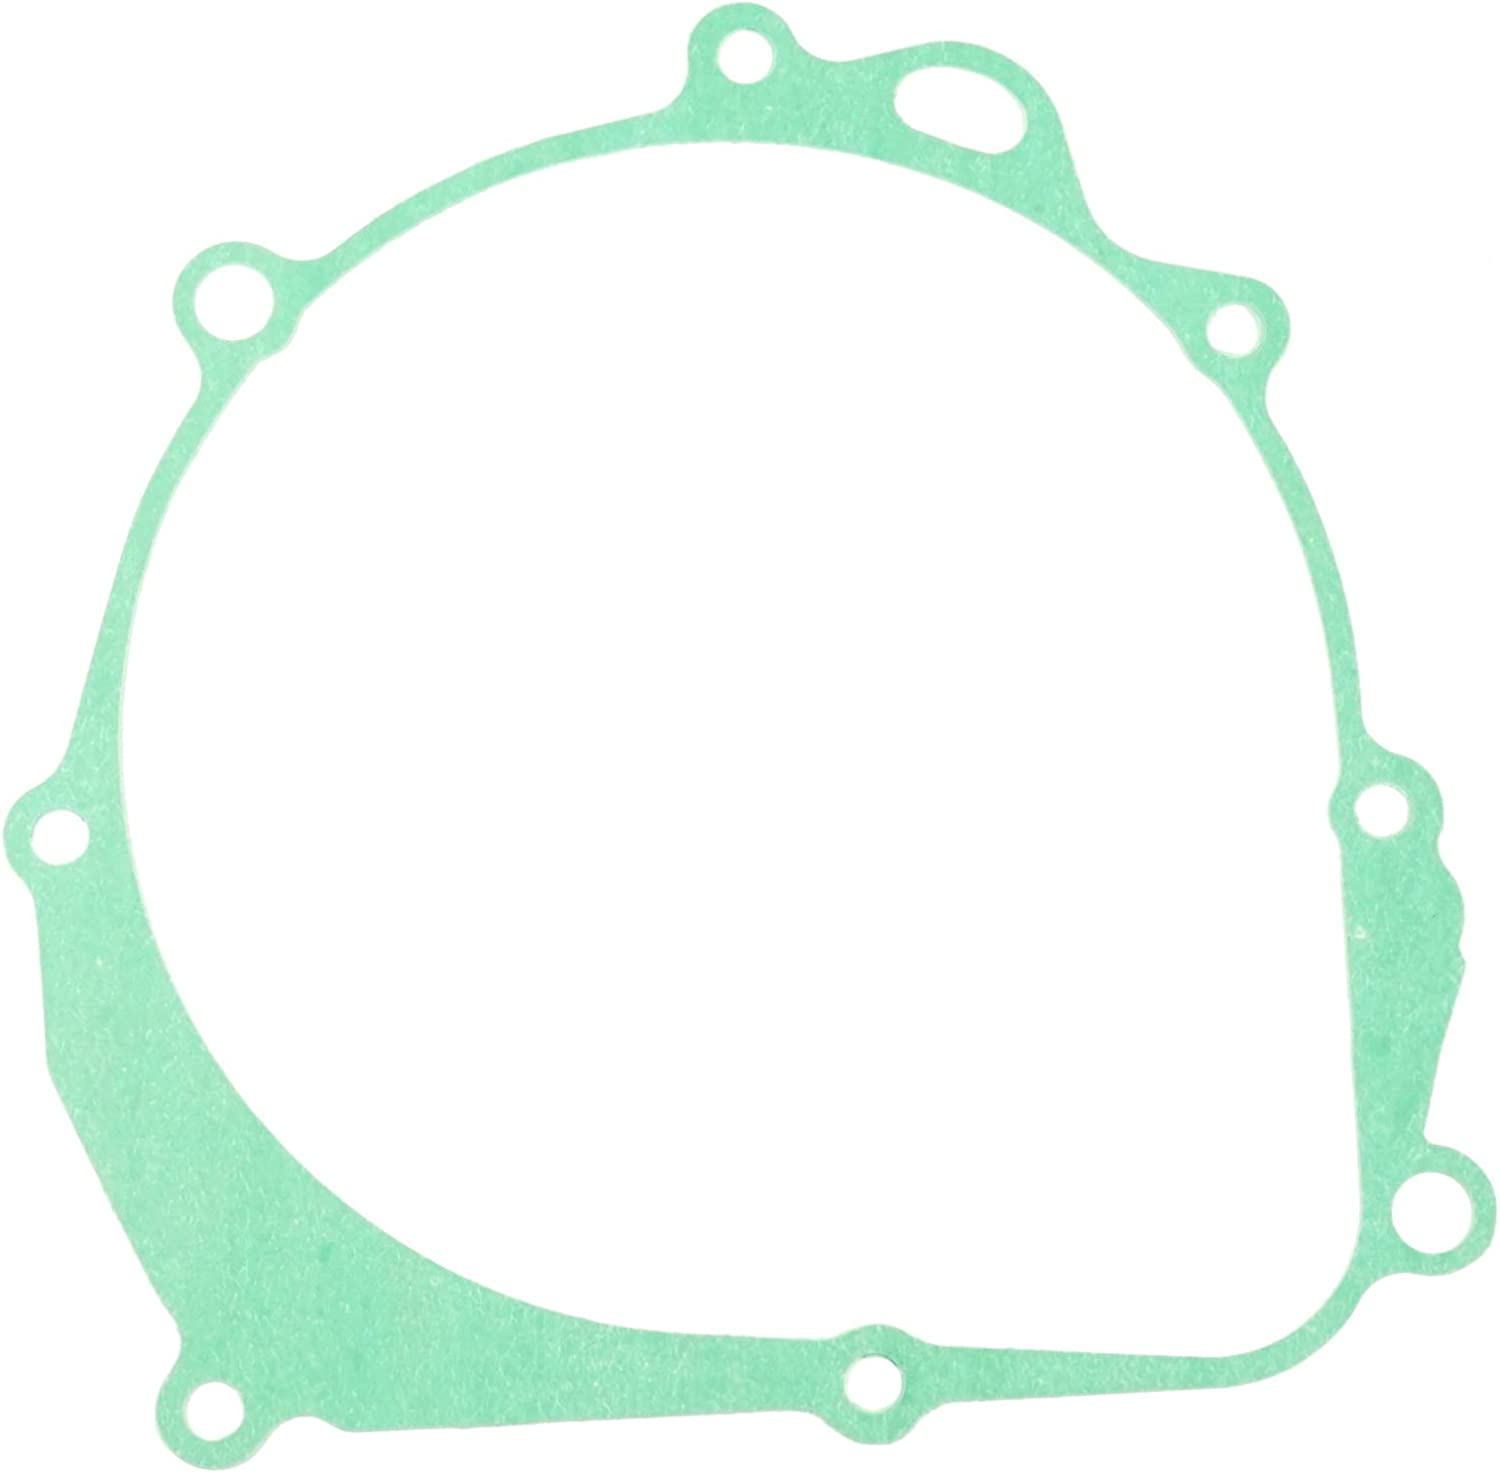 Caltric Stator Cover Gasket Compatible with Suzuki Lt250R Quadracer 250 2X4 1985 1986